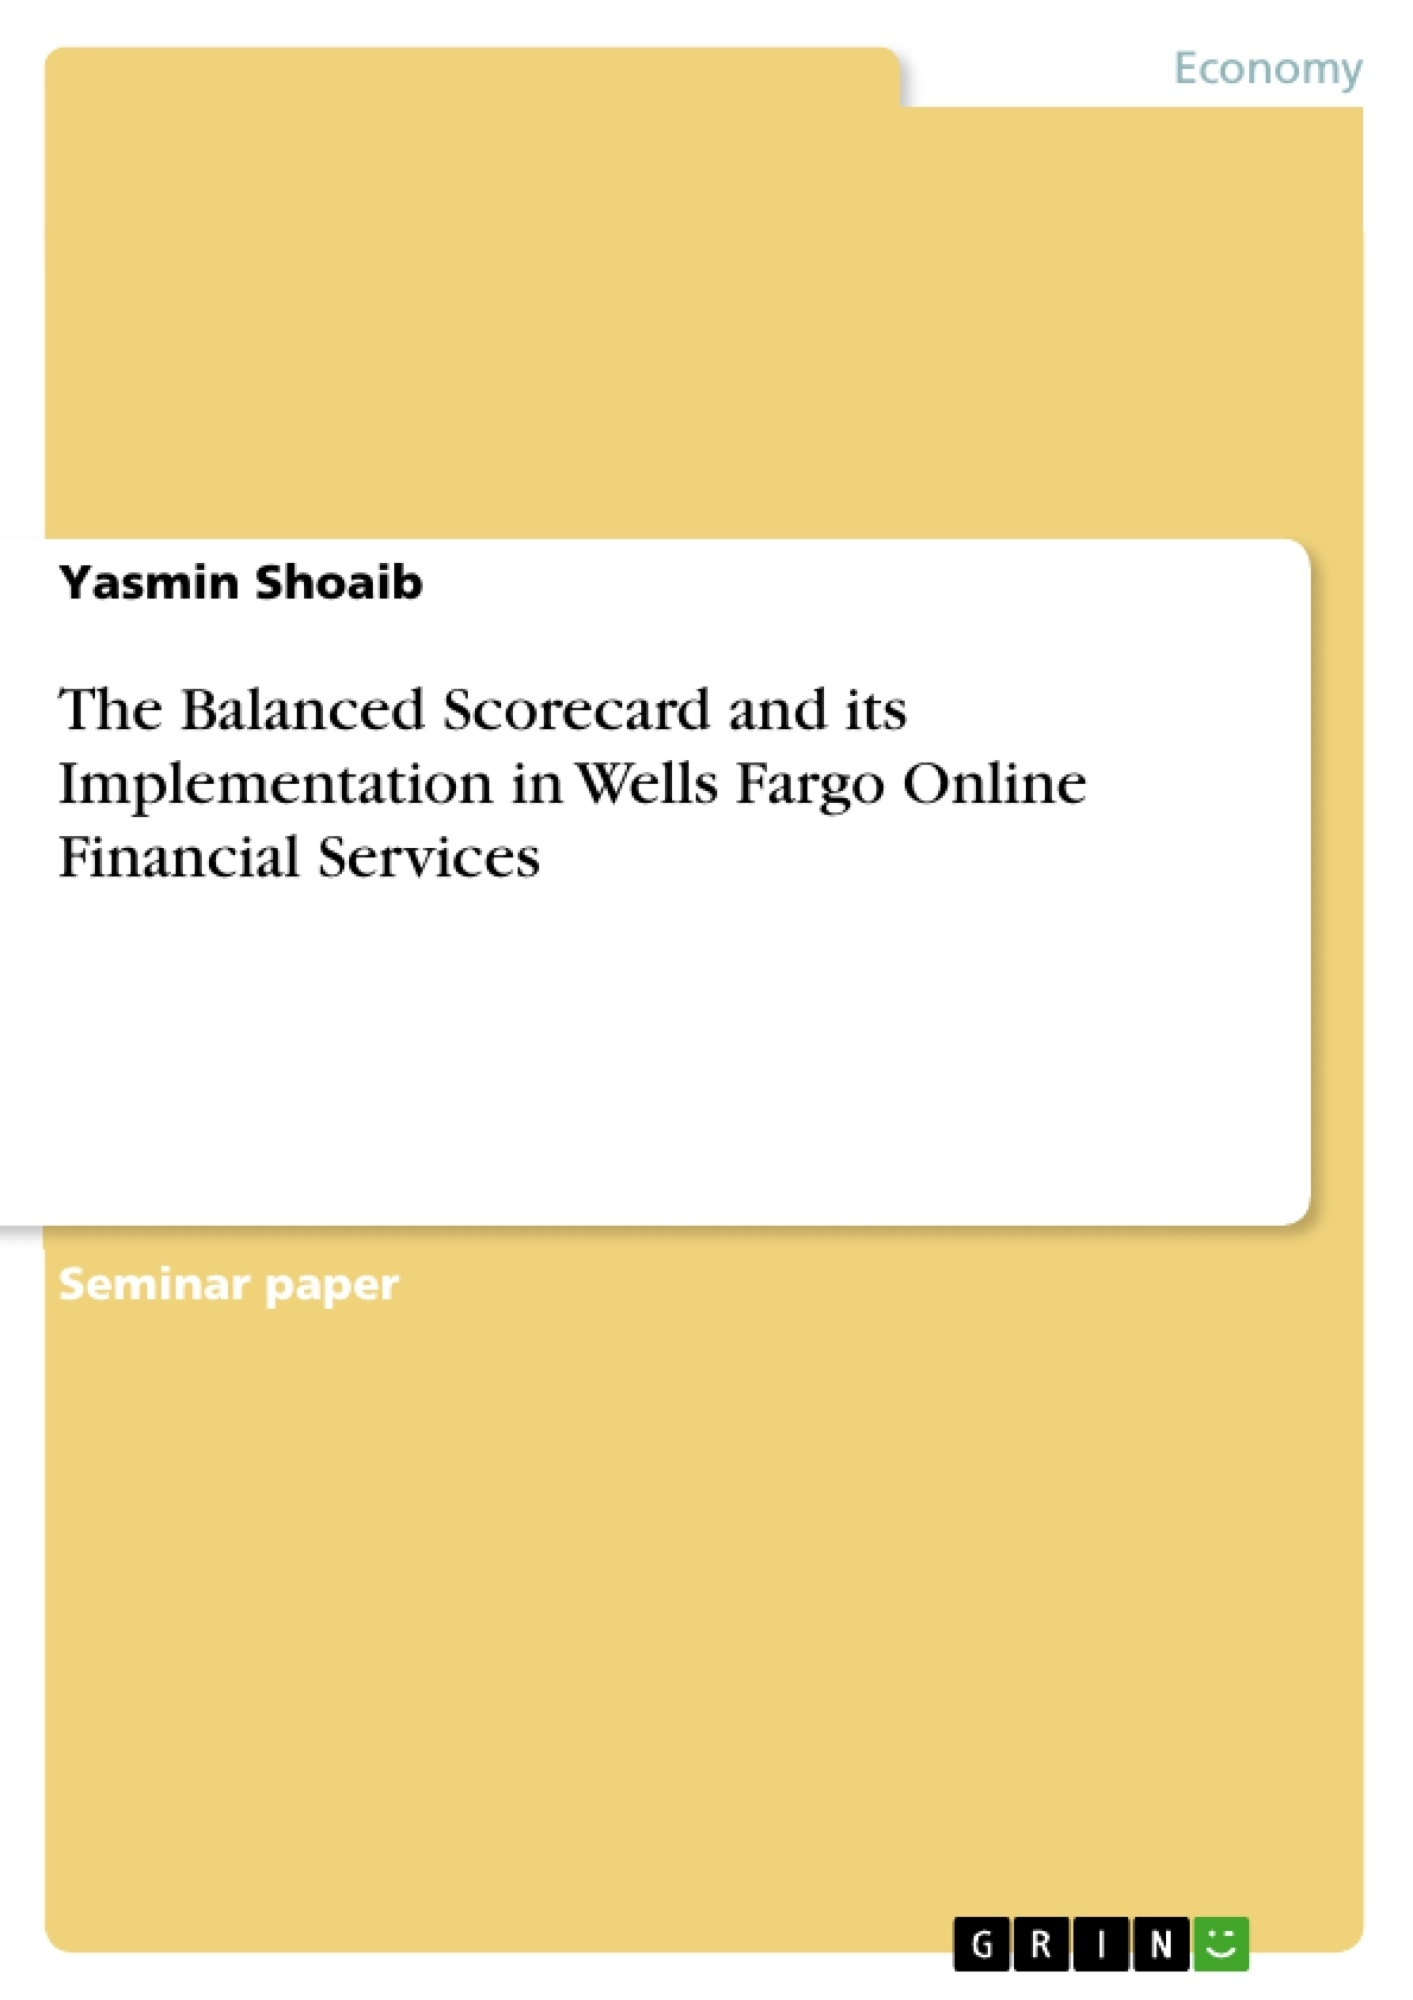 GRIN - The Balanced Scorecard and its Implementation in Wells Fargo Online  Financial Services